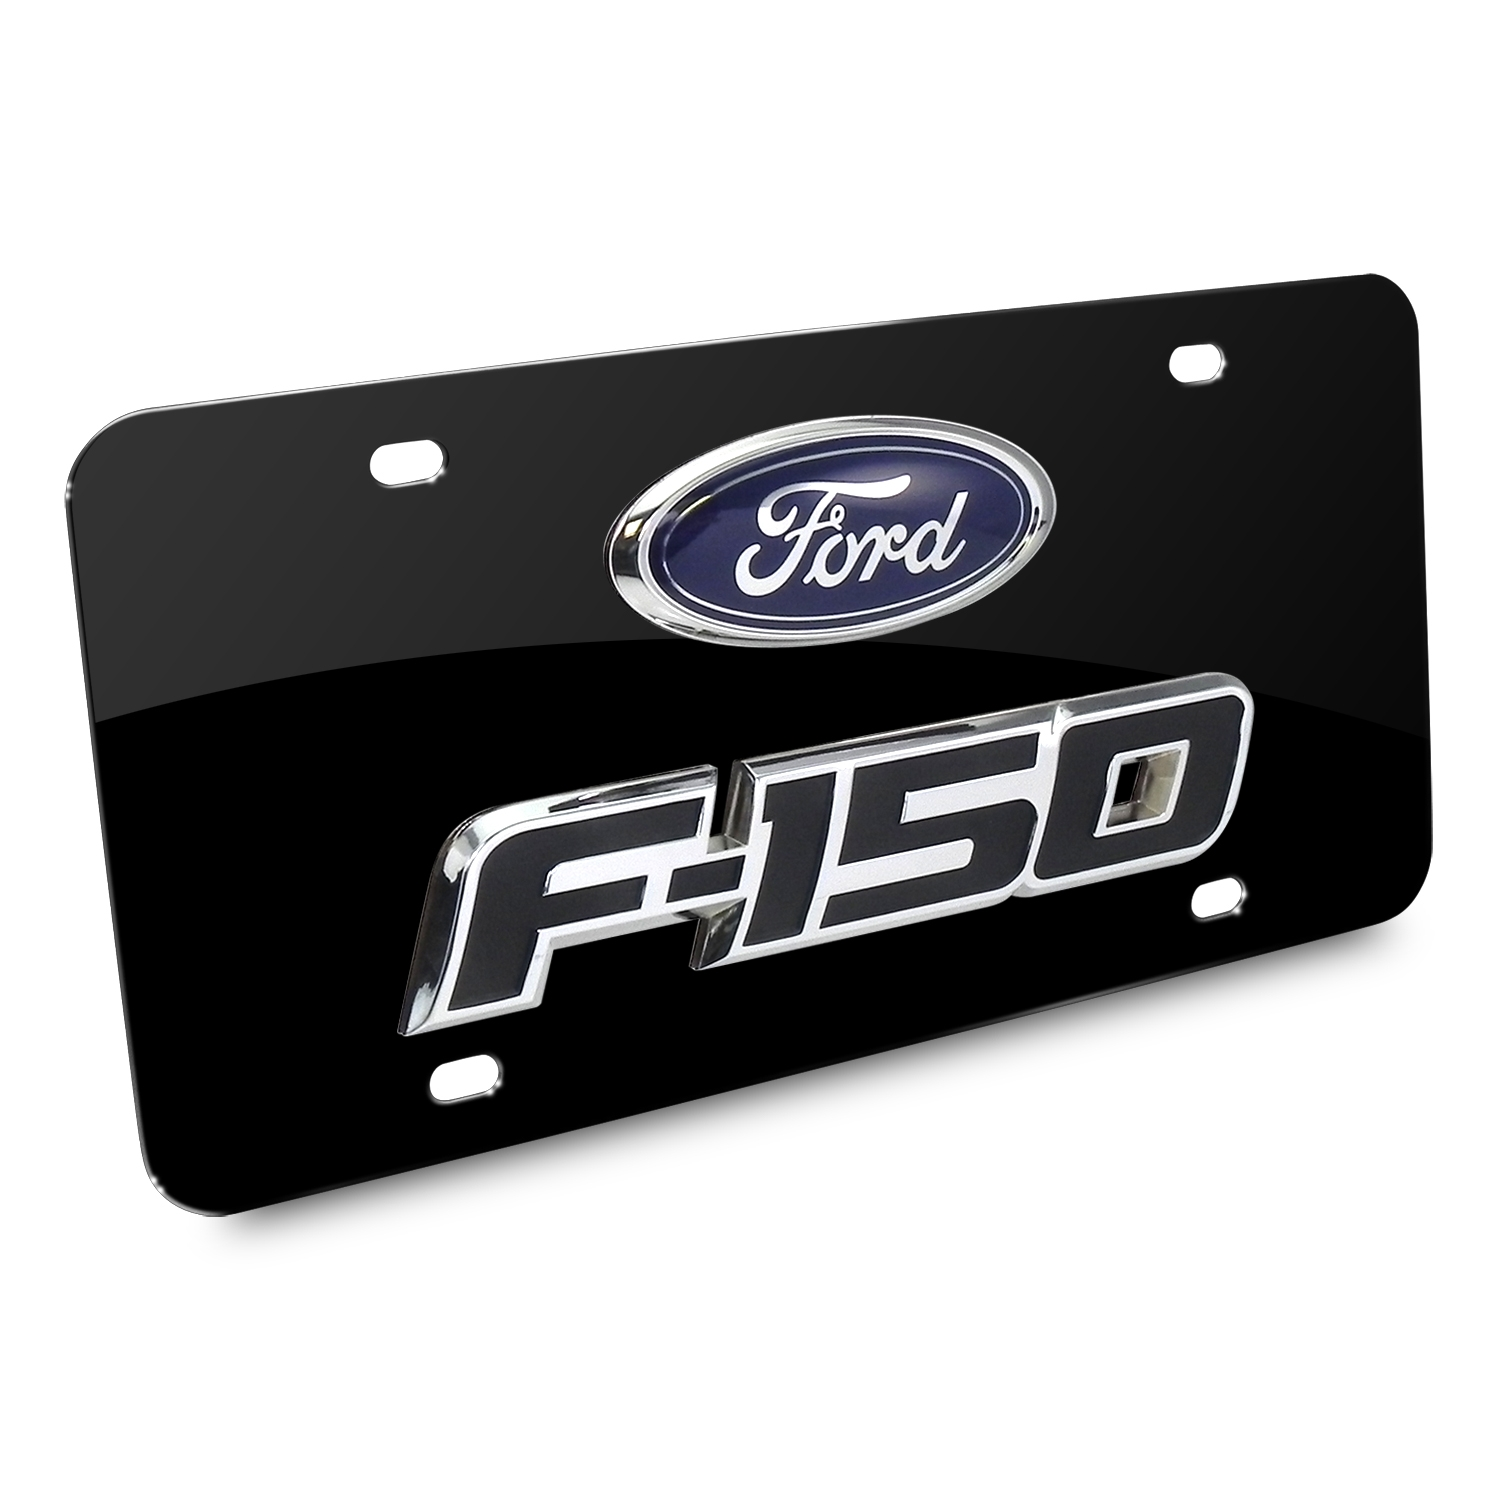 Ford F-150 Double 3D Logo Black Stainless Steel License Plate